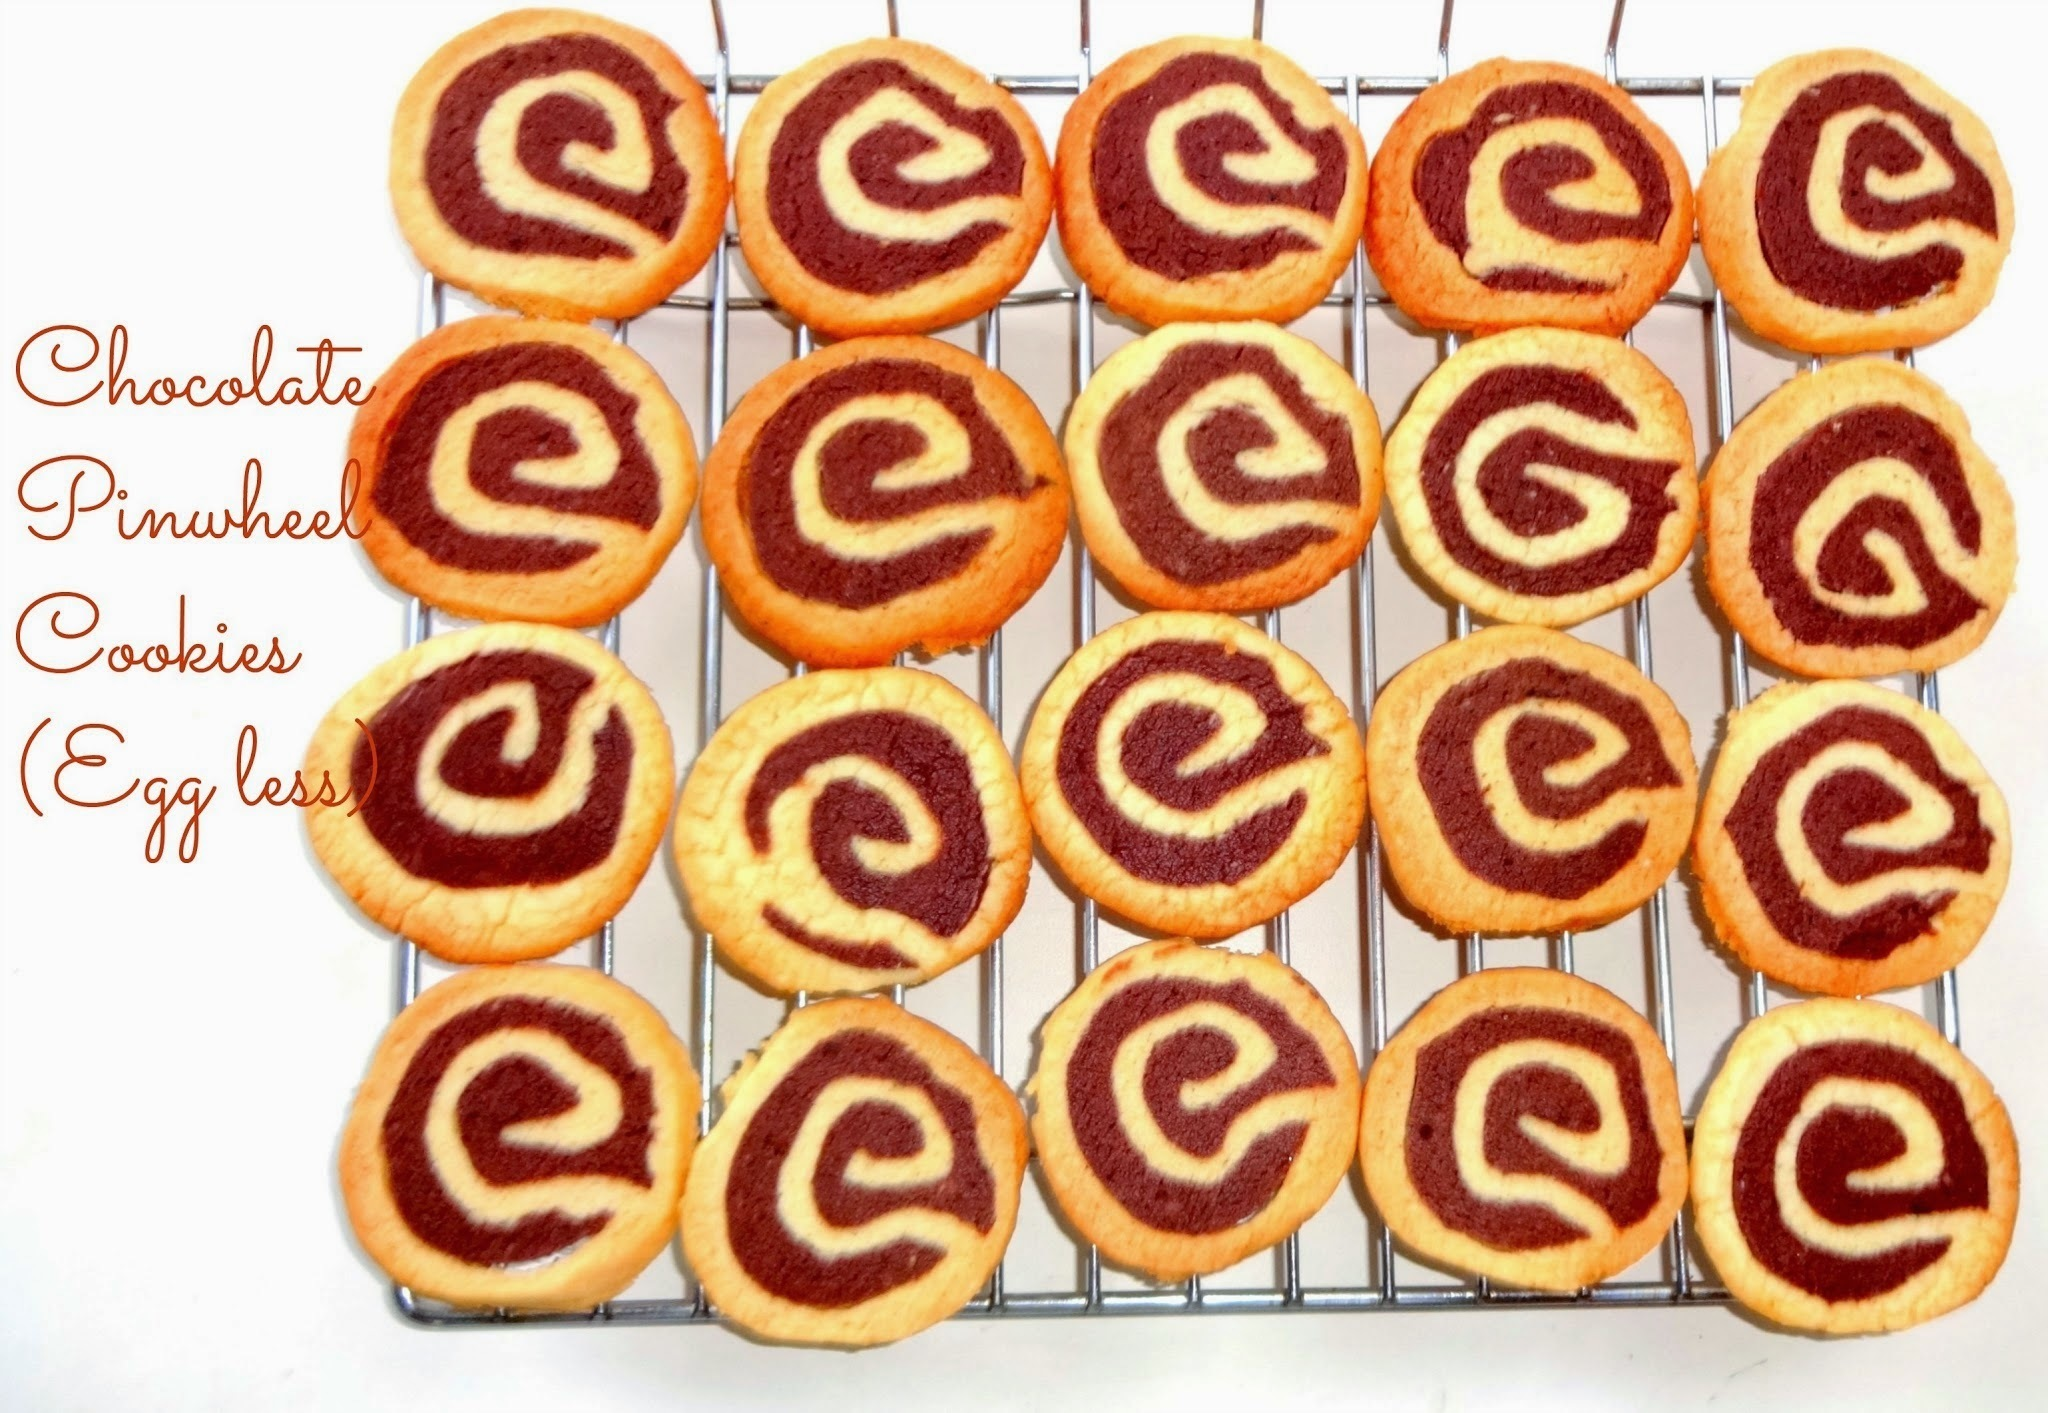 Chocolate Pinwheel Cookies (Egg less)